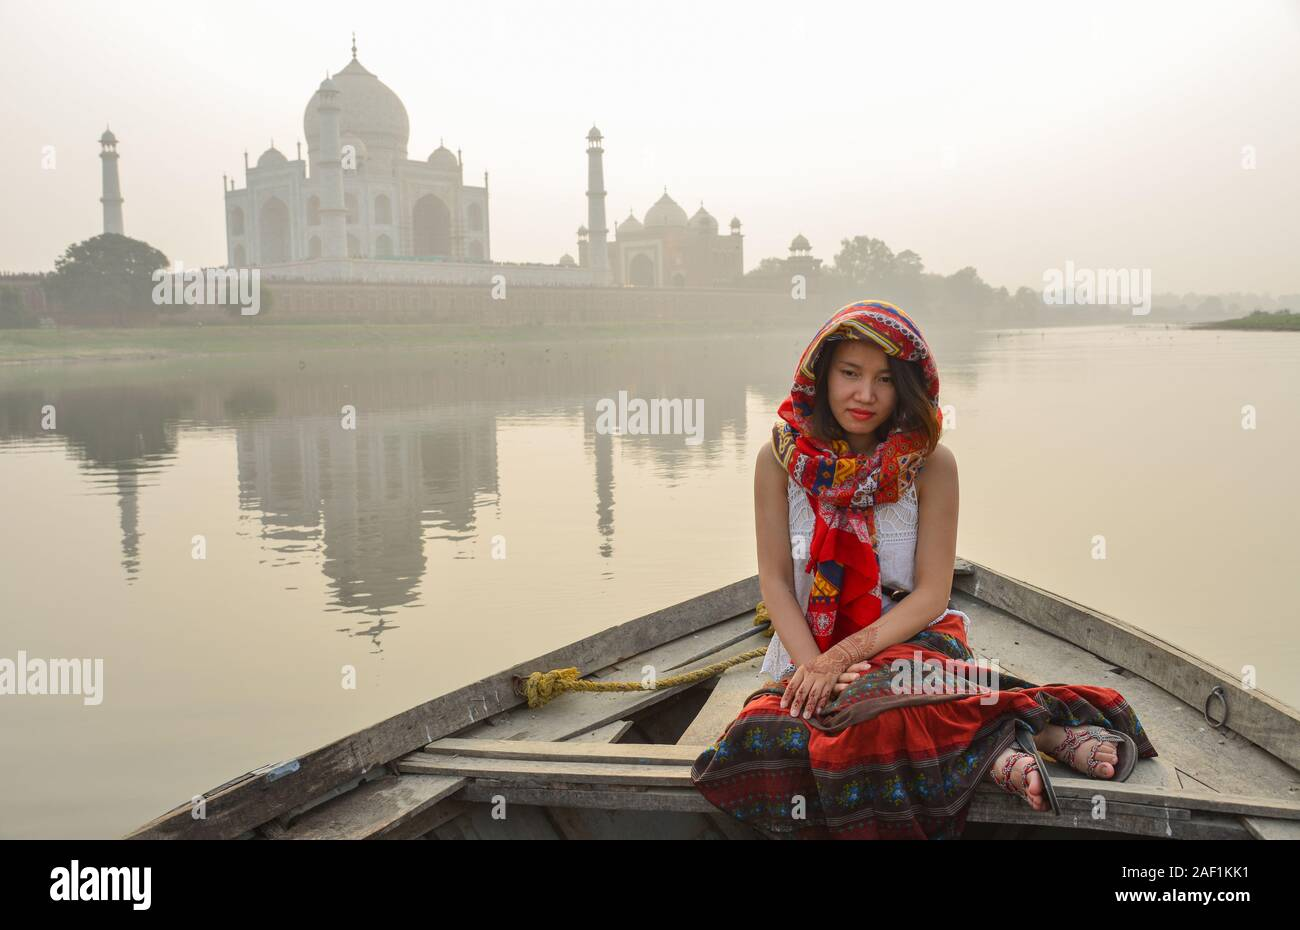 A woman watching sunset over Taj Mahal (Agra, India) from a wooden boat. Stock Photo